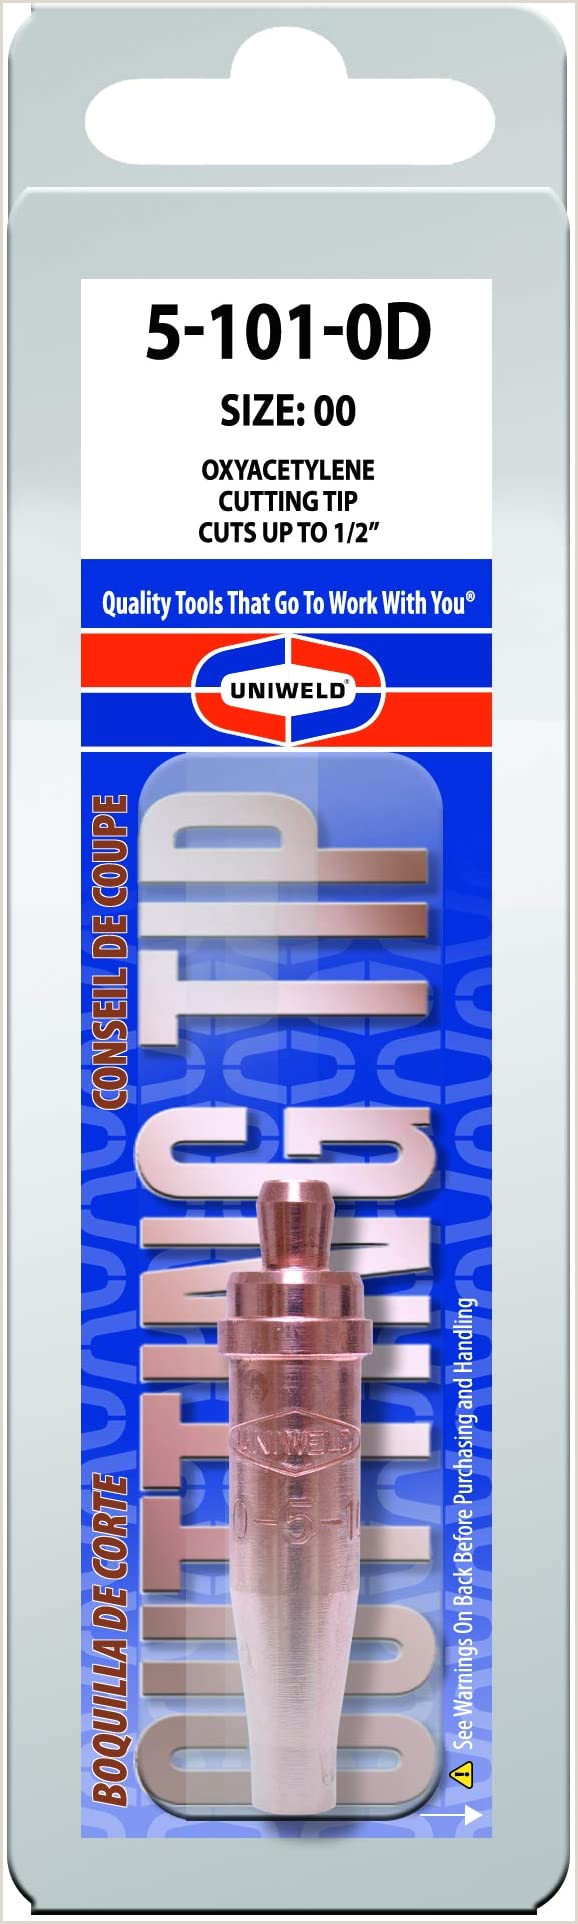 Normal Business Card Size Uniweld 5 101 0d Cutting Tip For Use With Acetylene